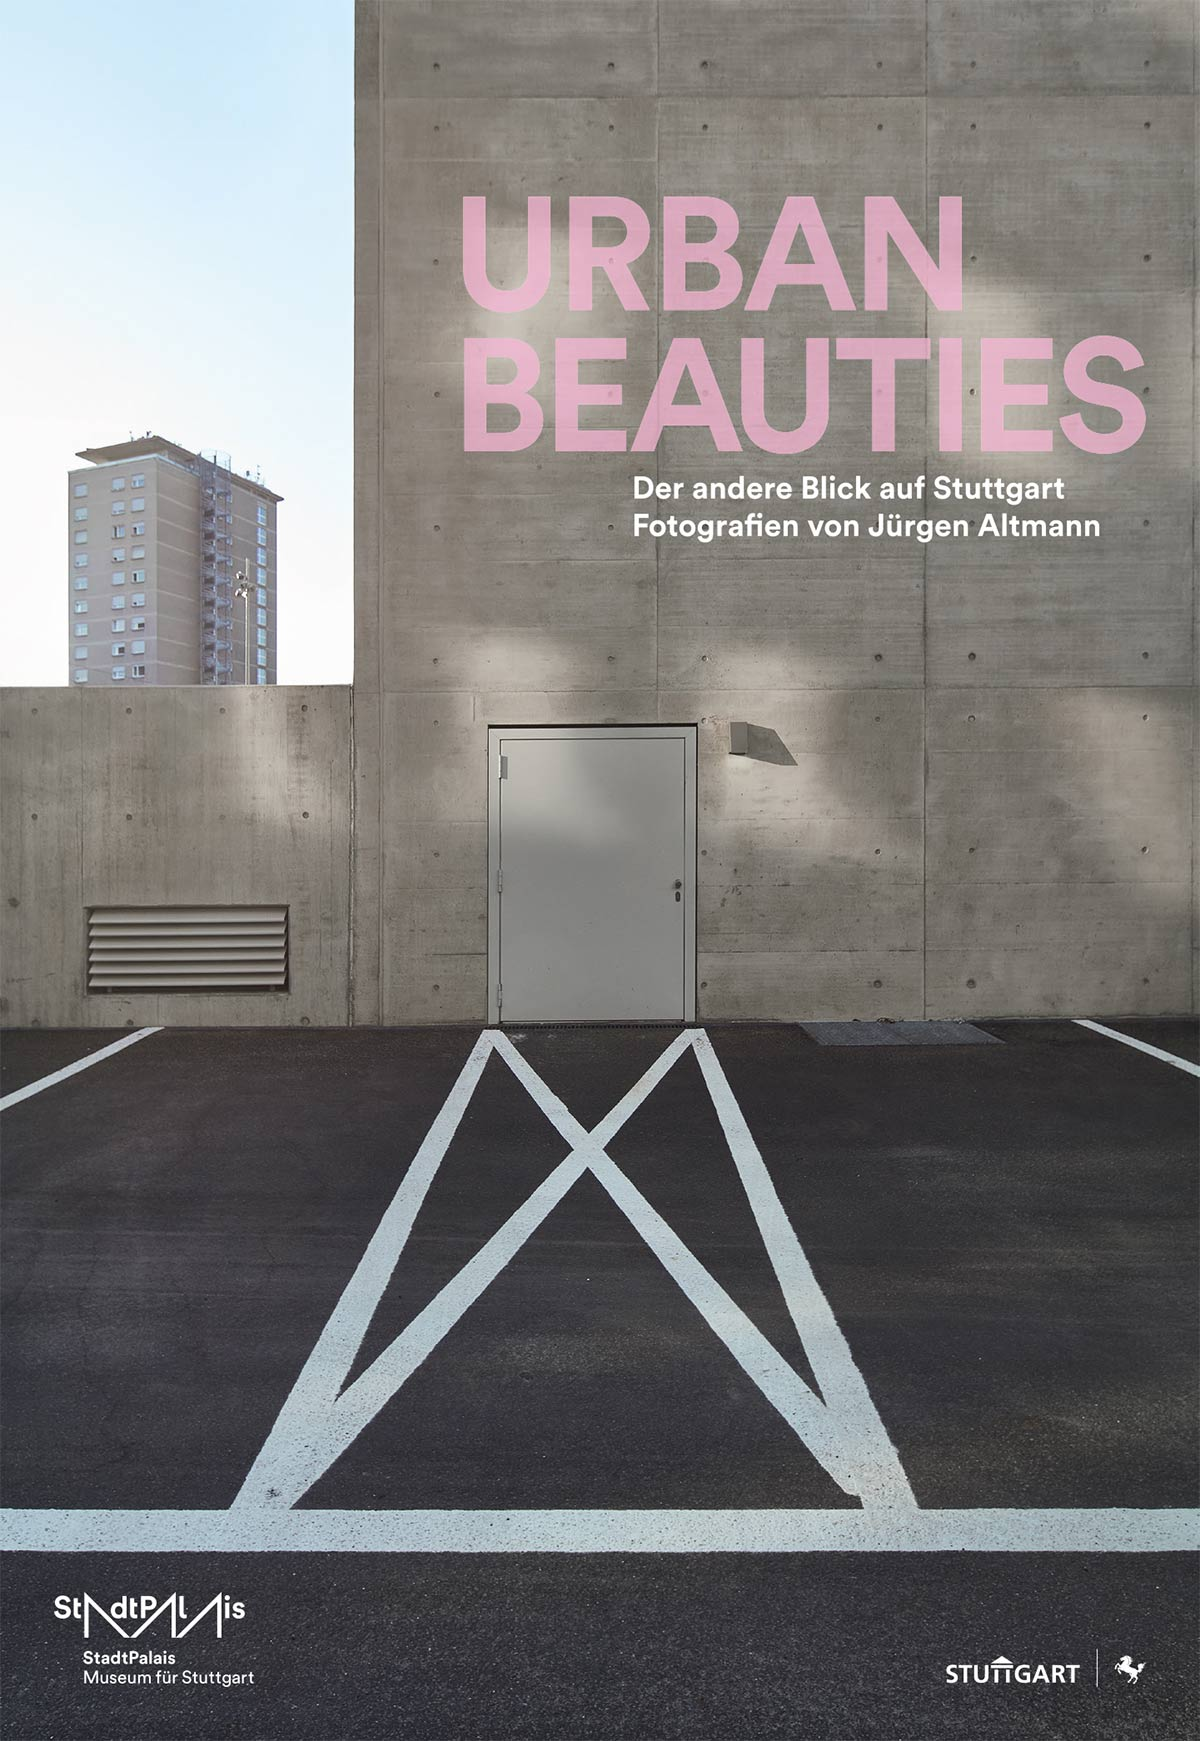 Urban Beauties Exhibition